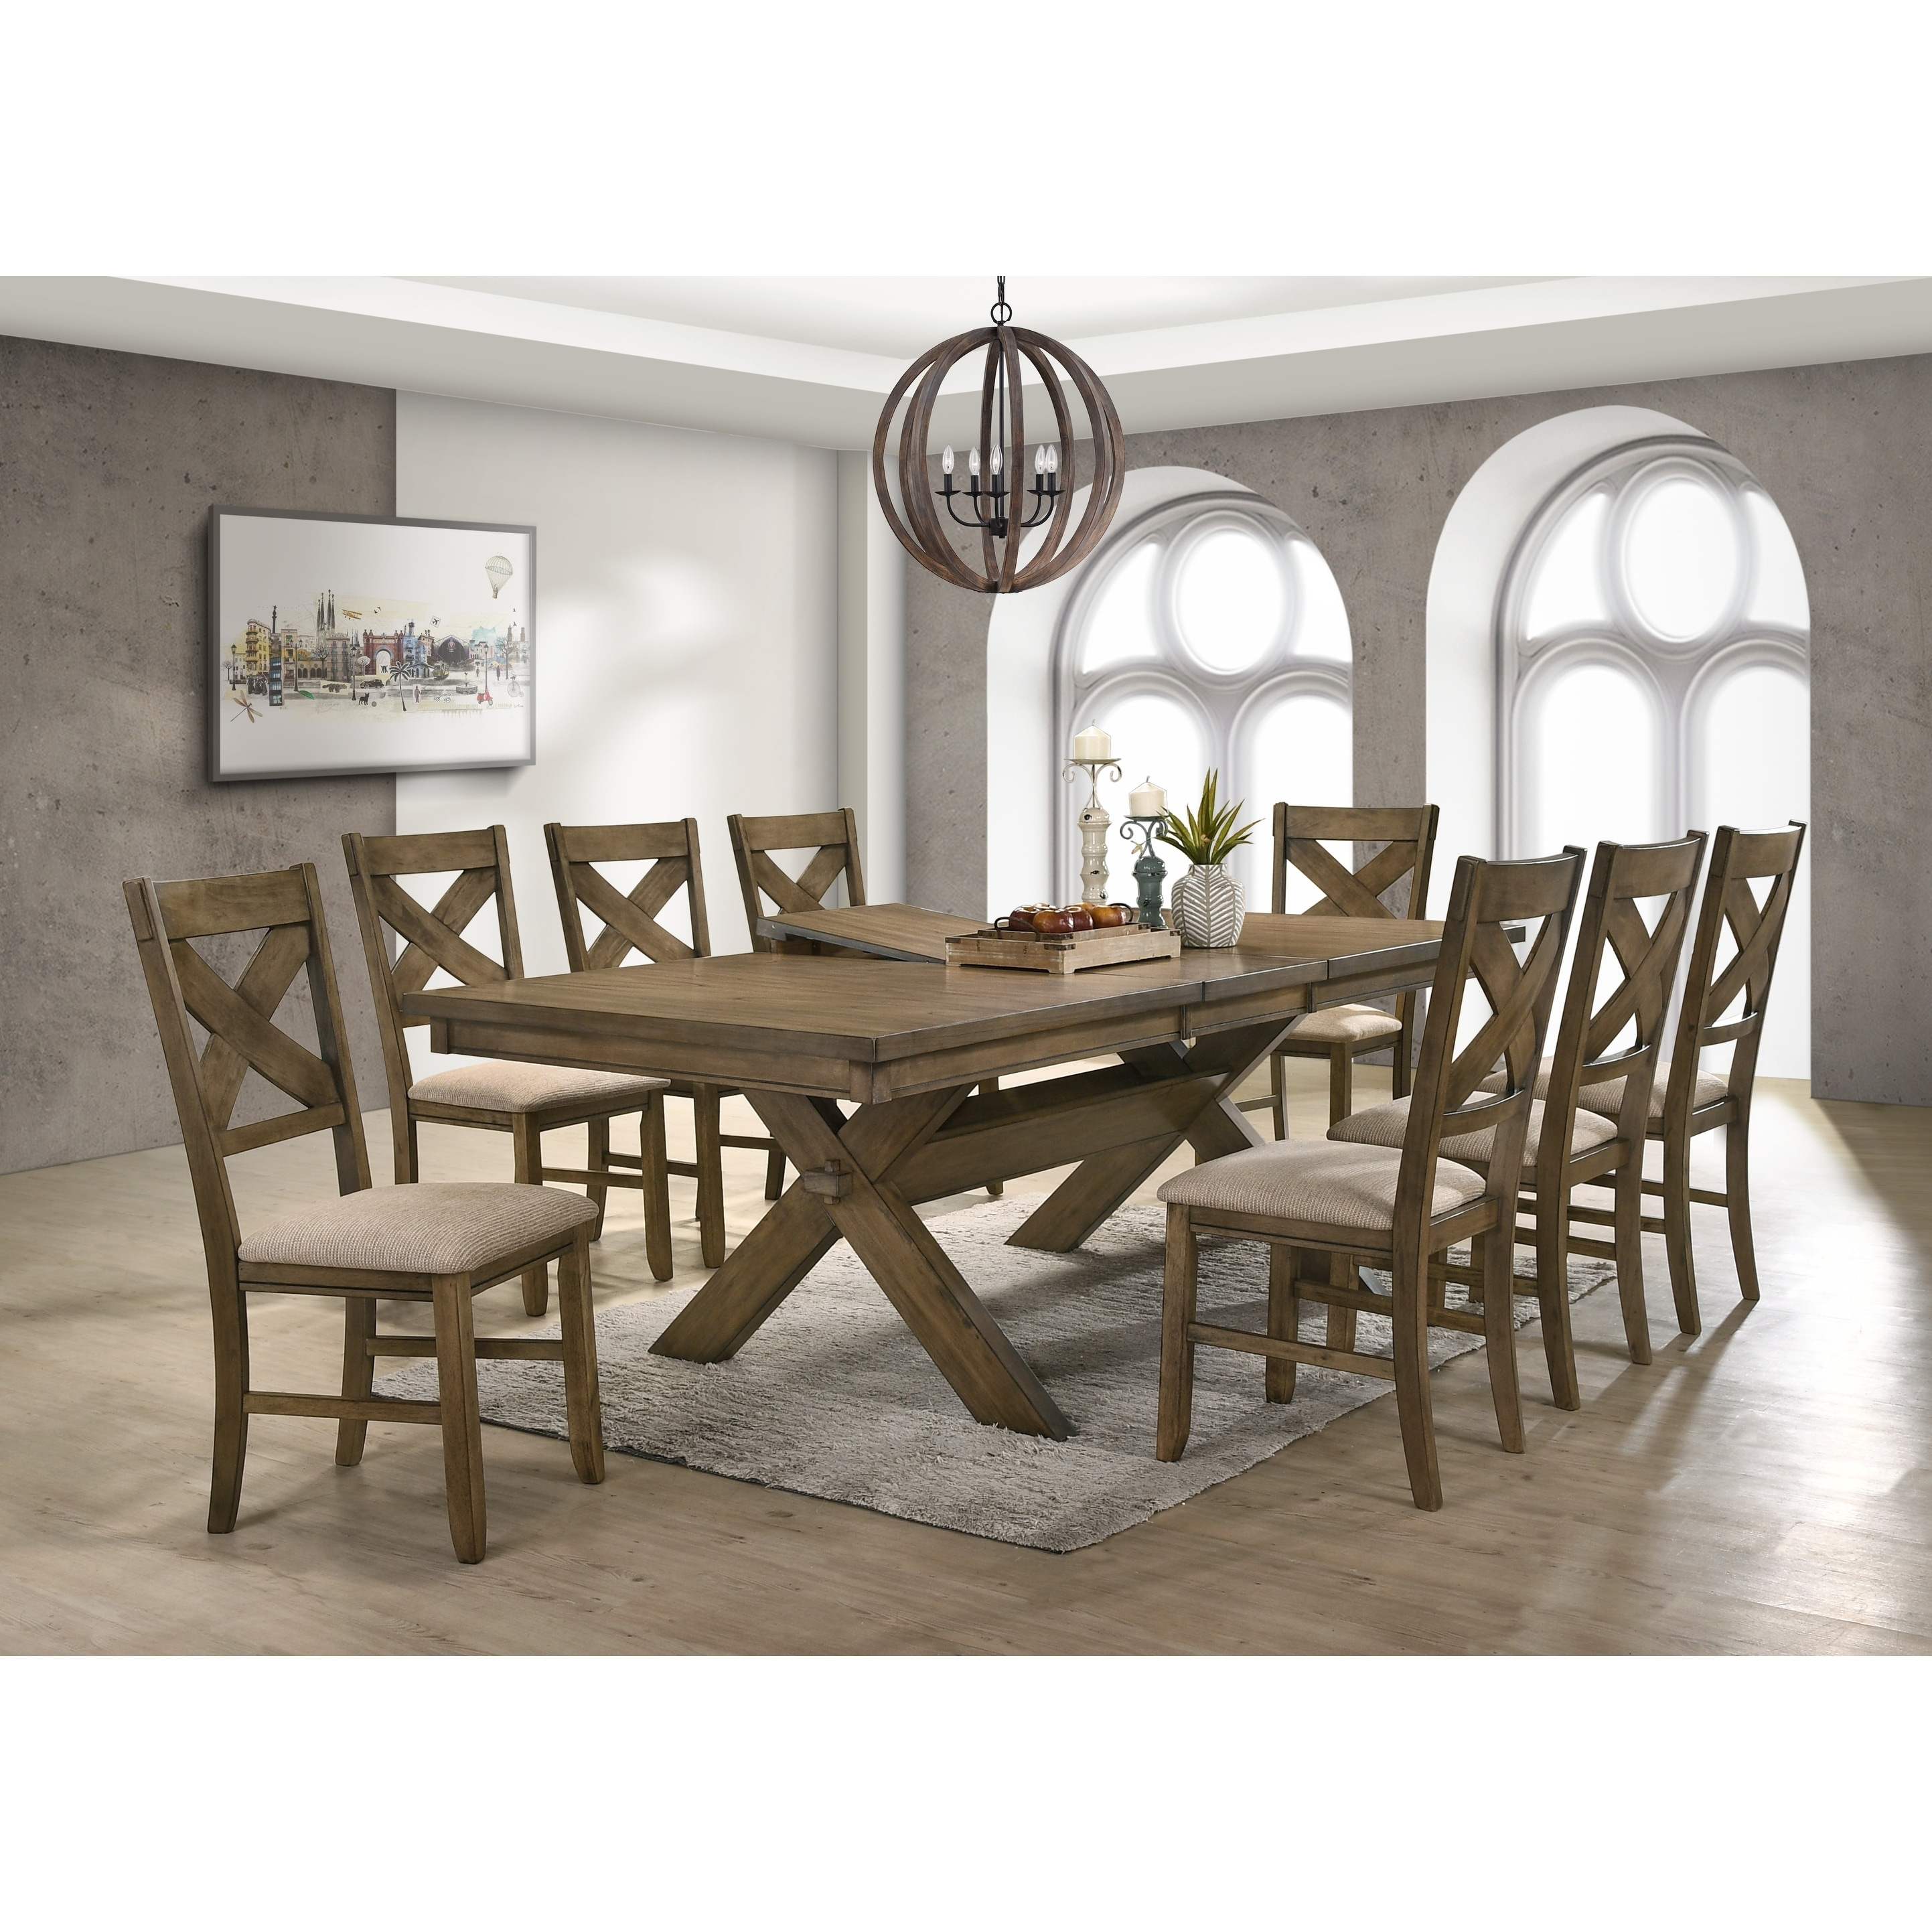 Raven Wood Butterfly Leaf Dining Table and 9 Chairs